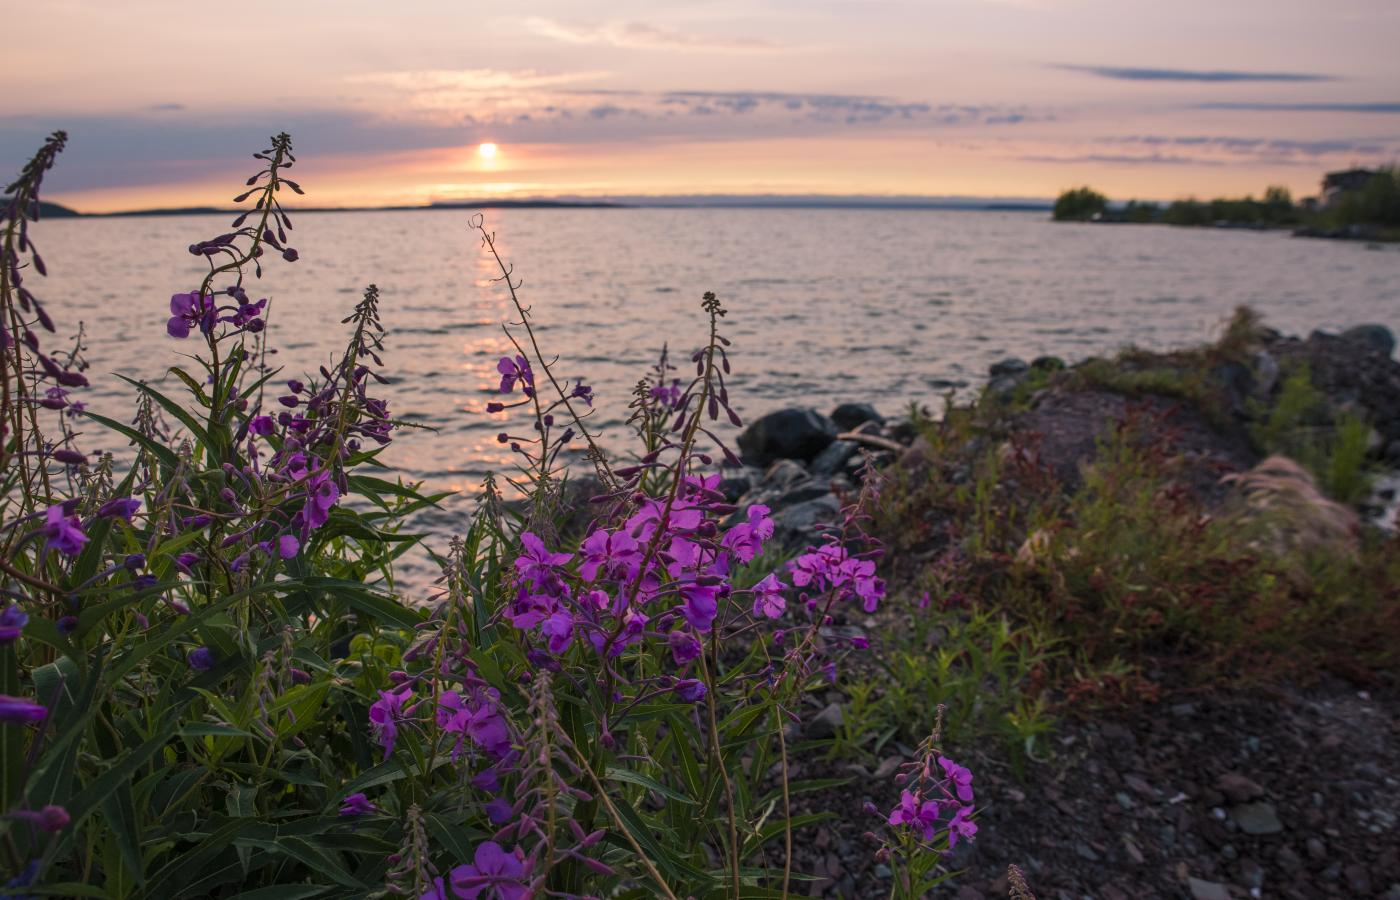 fireweed beside the lake at sunset